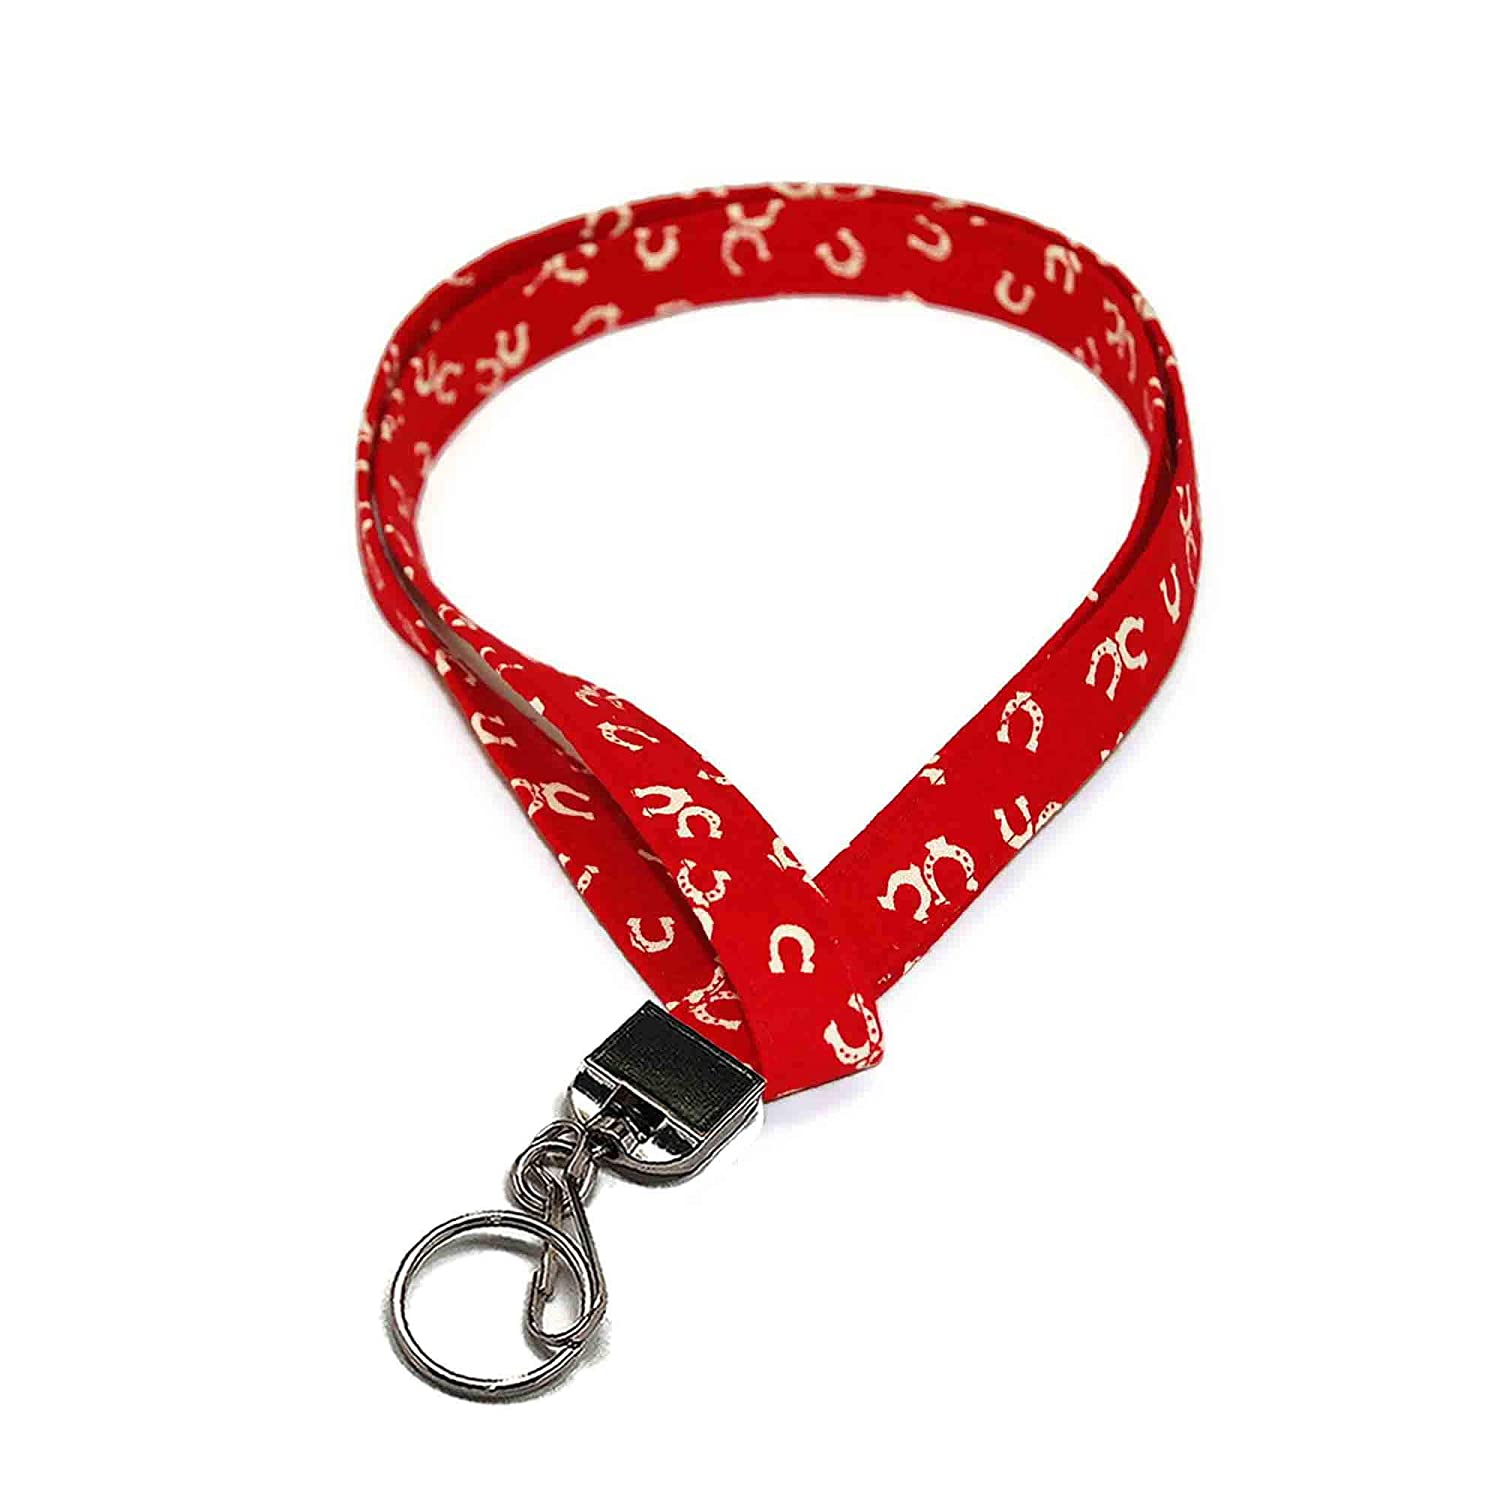 Horseshoe Red Fabric Lanyard for ID Keys or Max 63% OFF Max 41% OFF Clip with